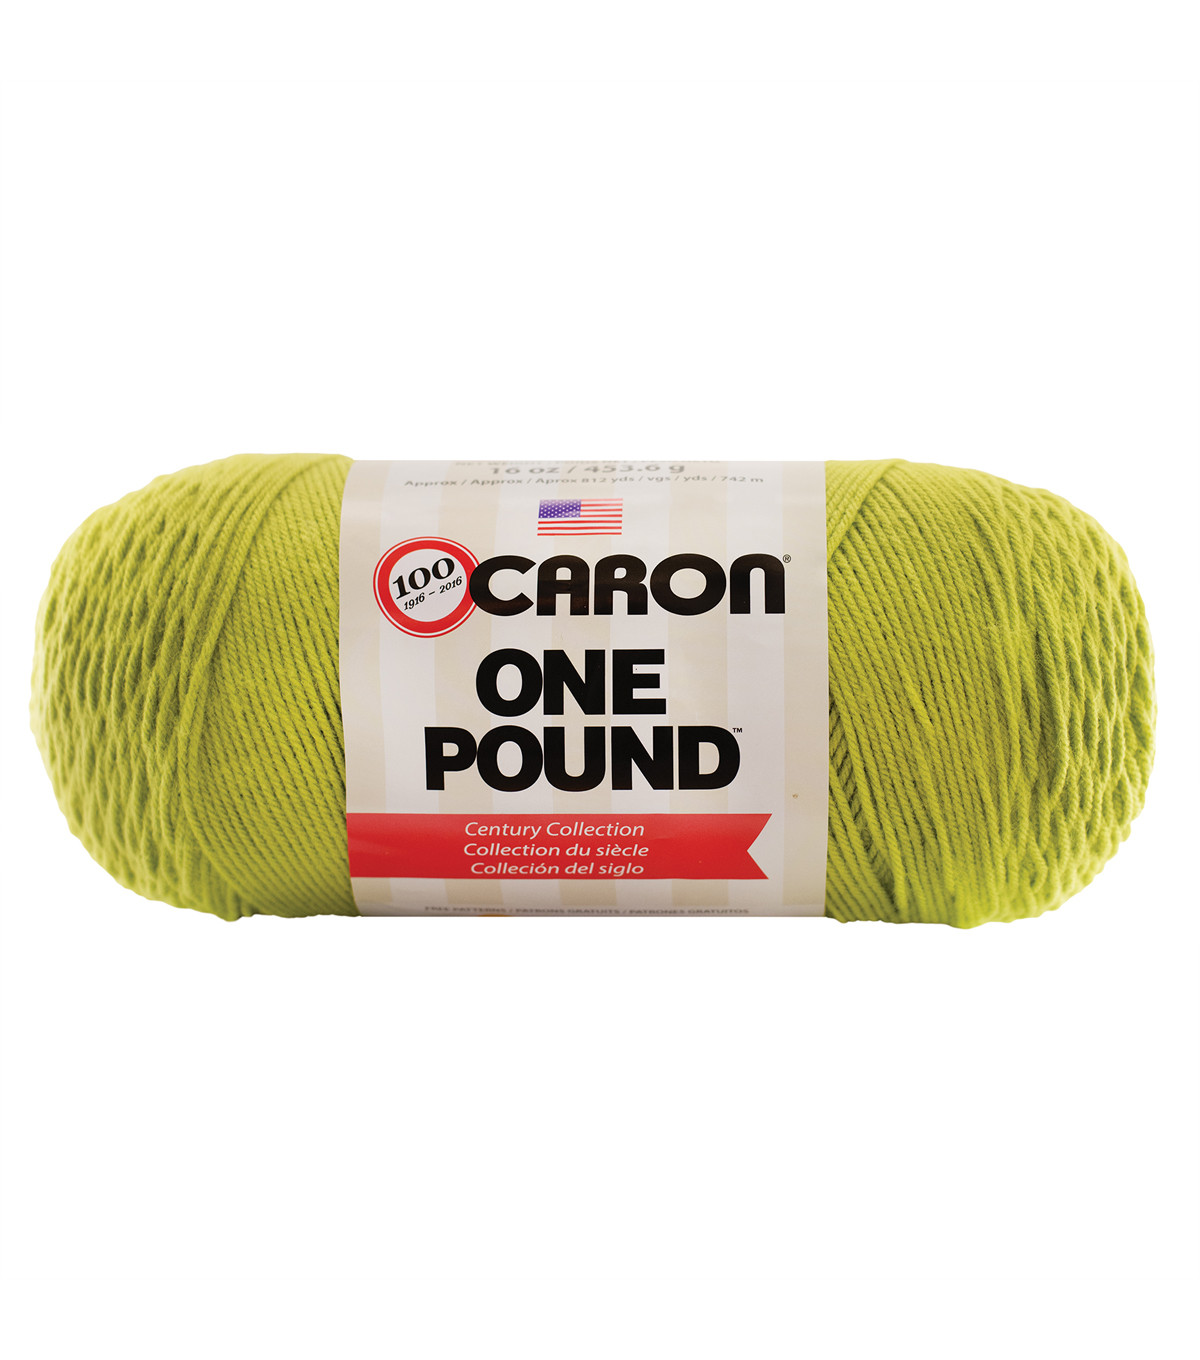 Elegant Caron E Pound Century Collection Yarn Caron Pound Yarn Of Gorgeous 48 Pictures Caron Pound Yarn